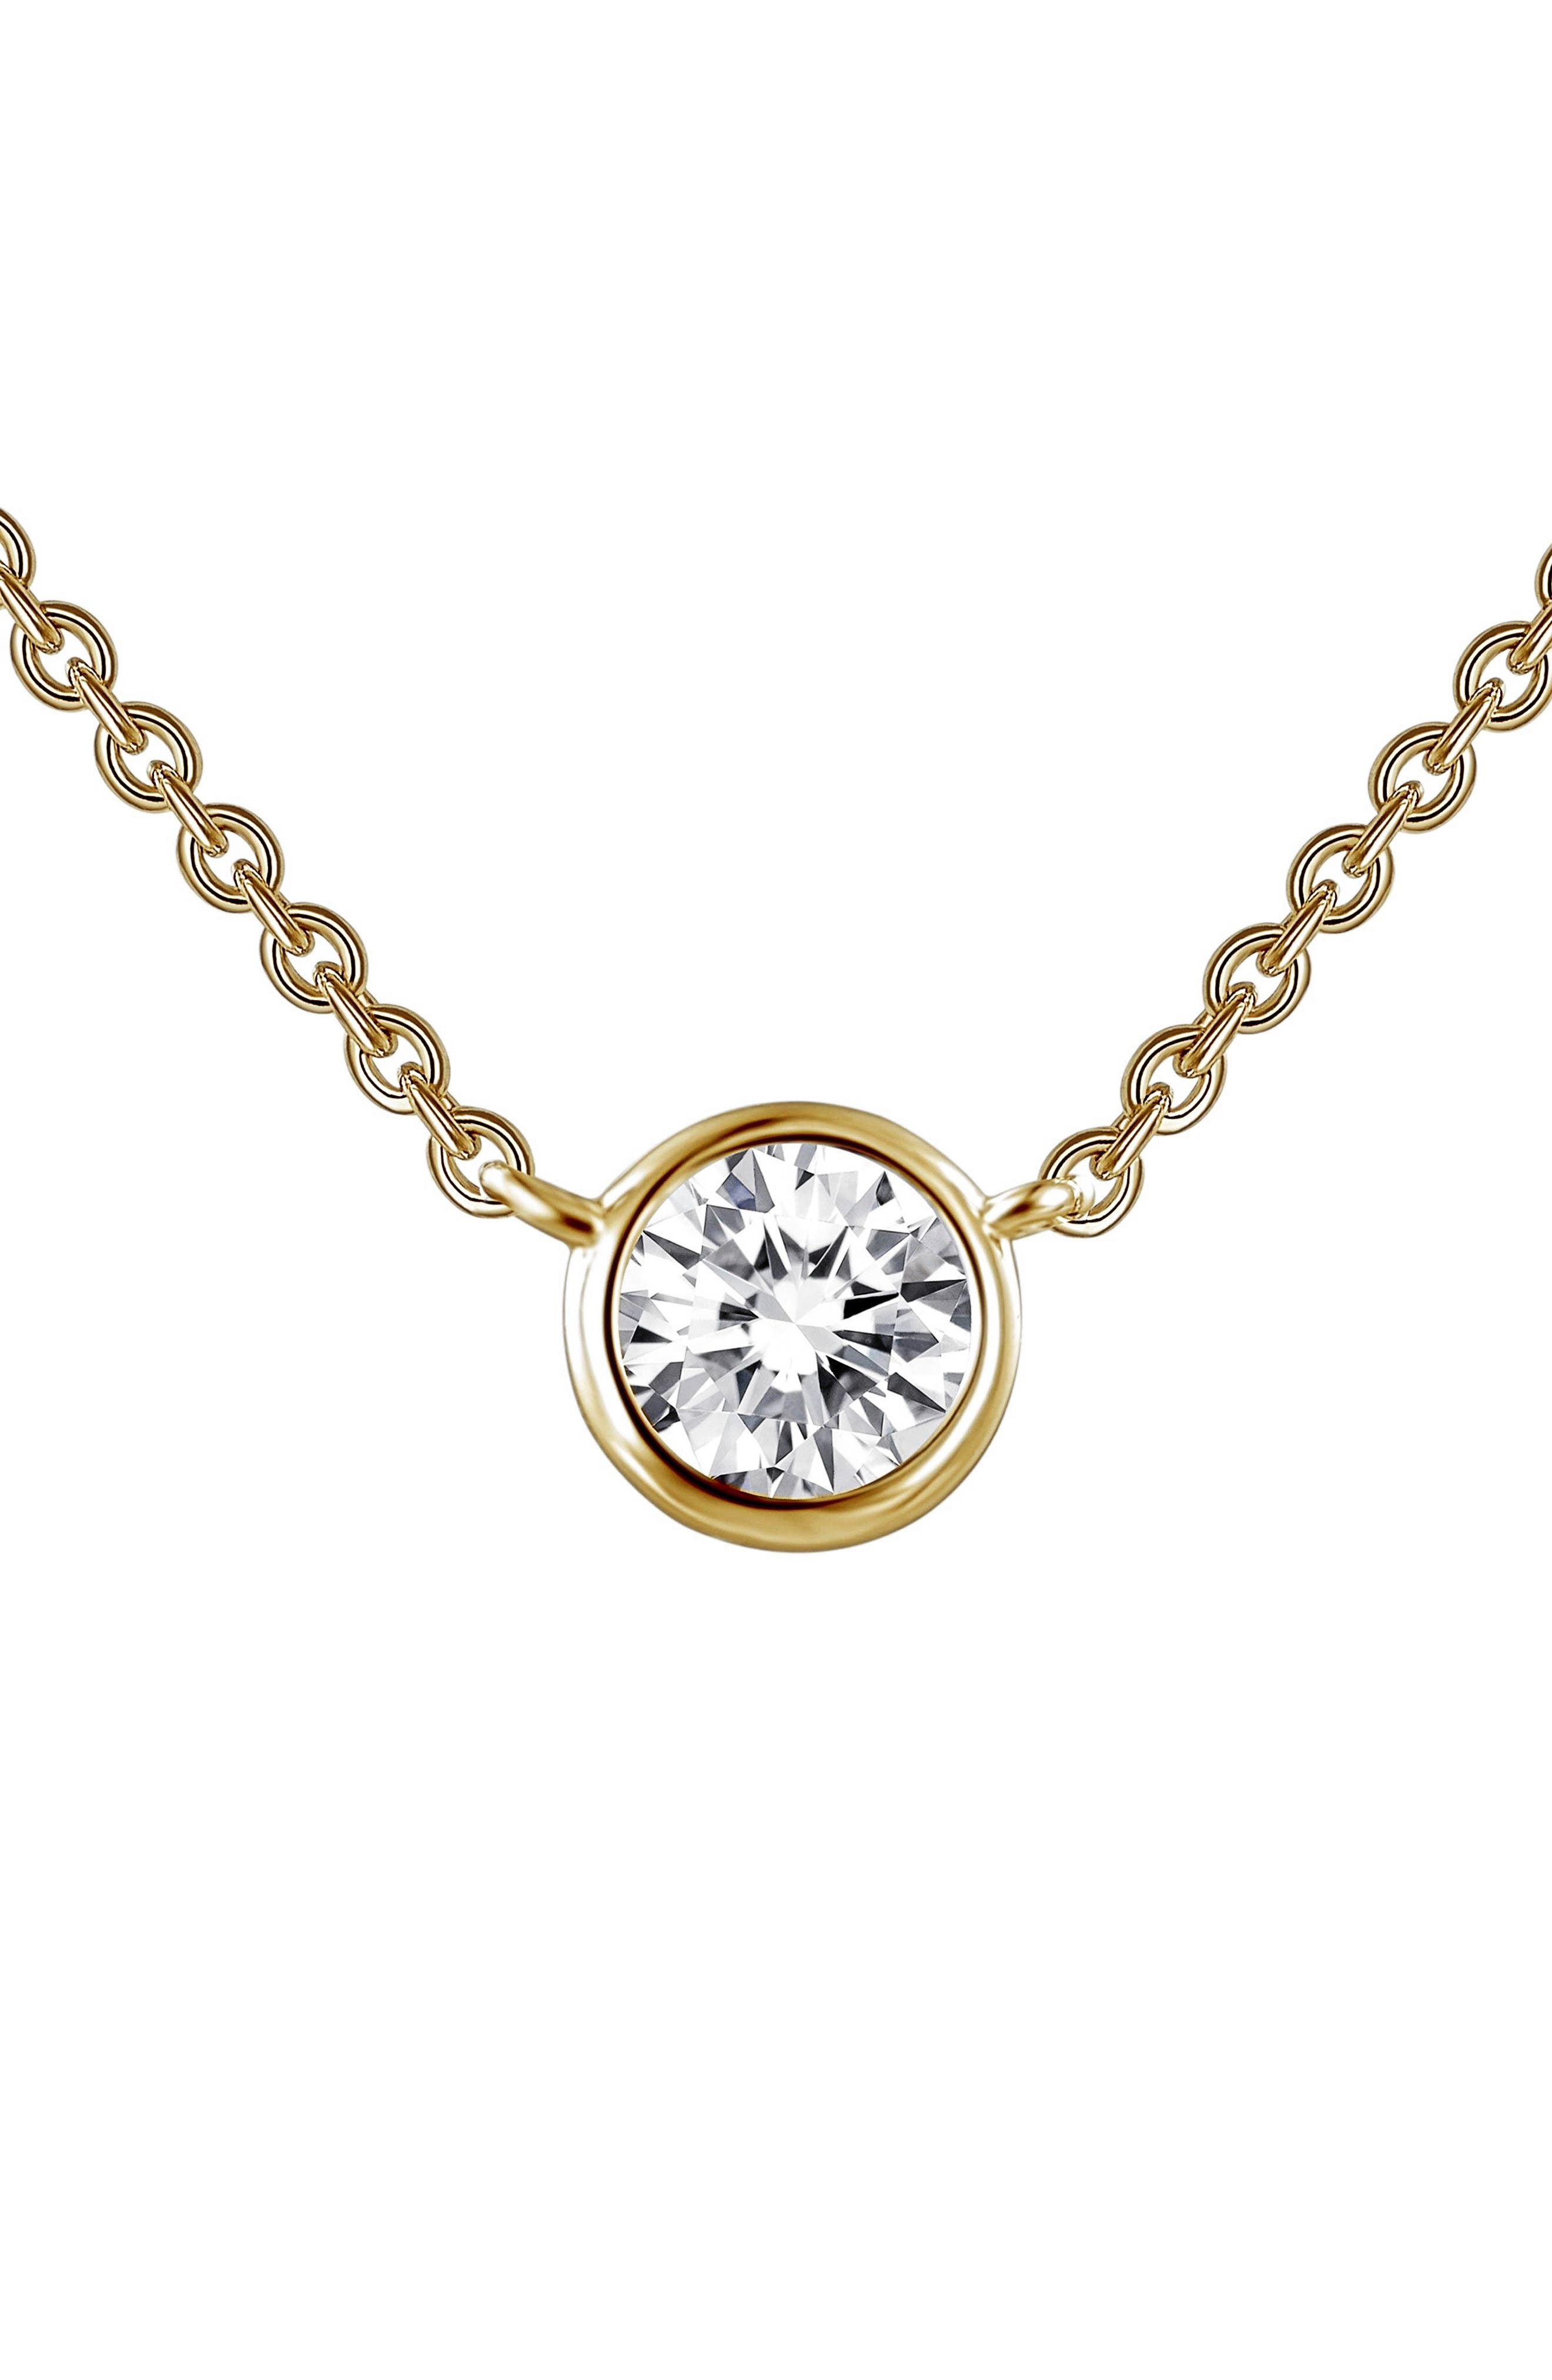 Simulated Diamond Pendant Necklace,                             Main thumbnail 1, color,                             Gold